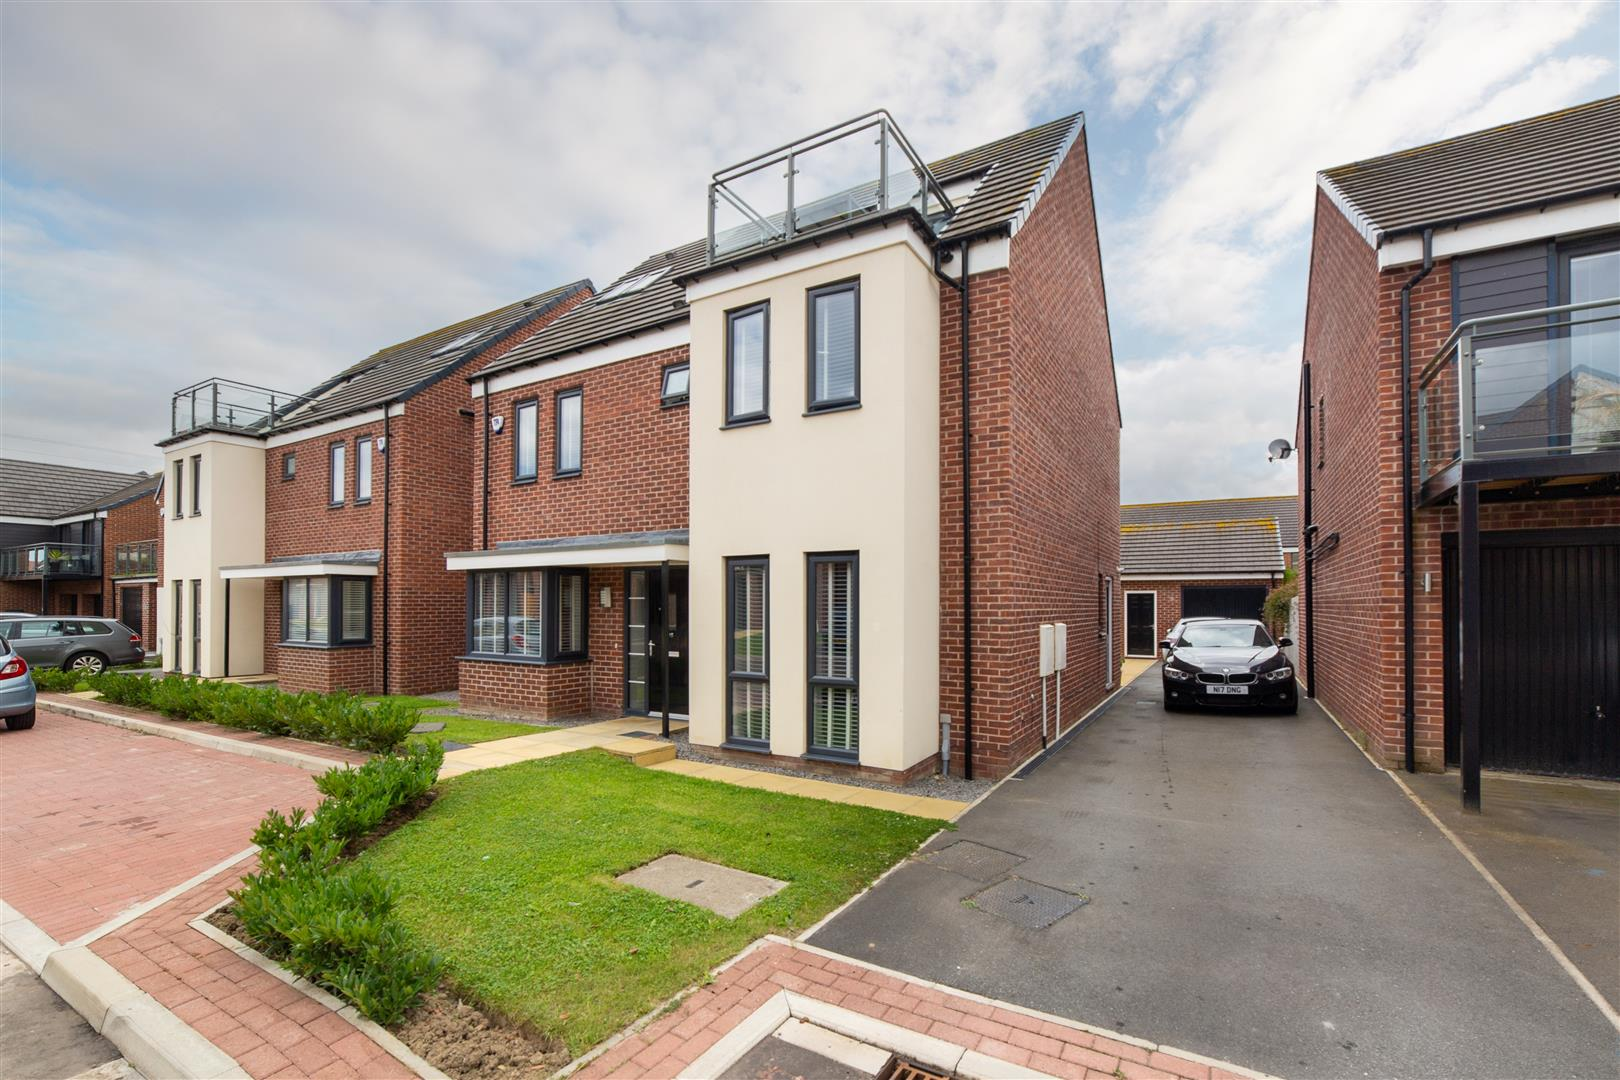 5 bed detached house for sale in Birchwood Chase, Great Park, NE13